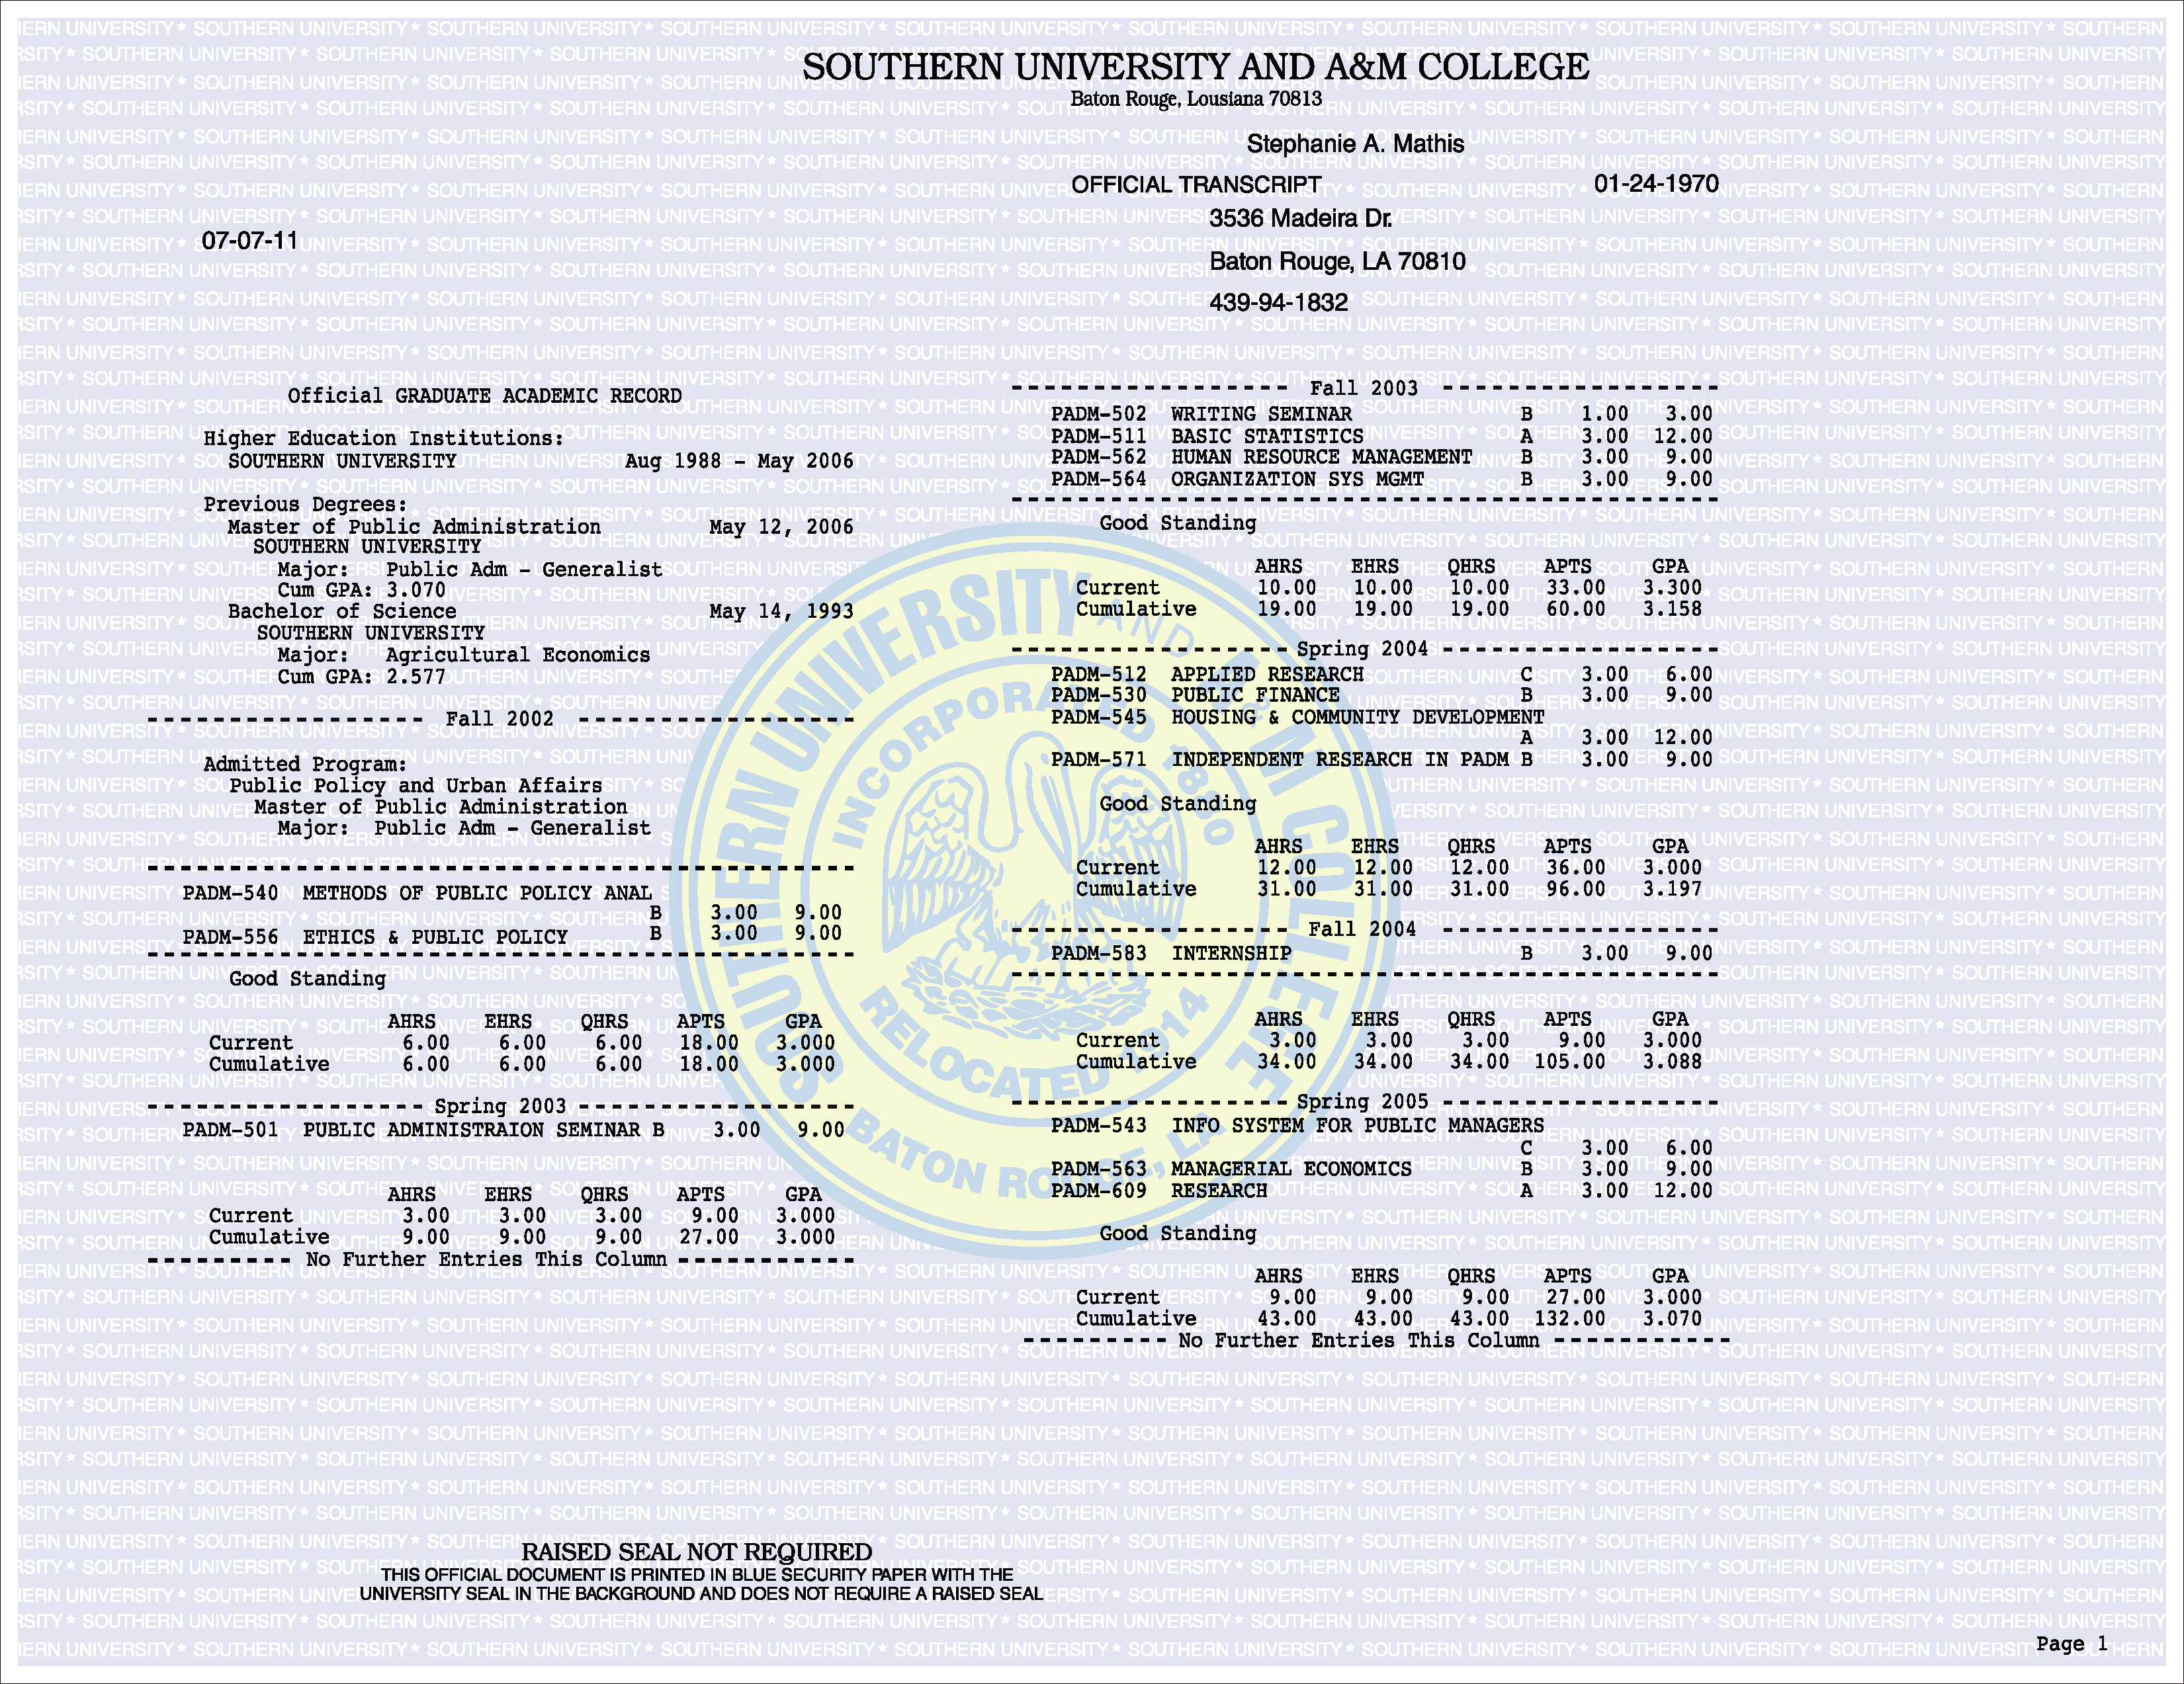 Southern University And A&M College Actual Match Transcript Free Sample From Phonydiploma